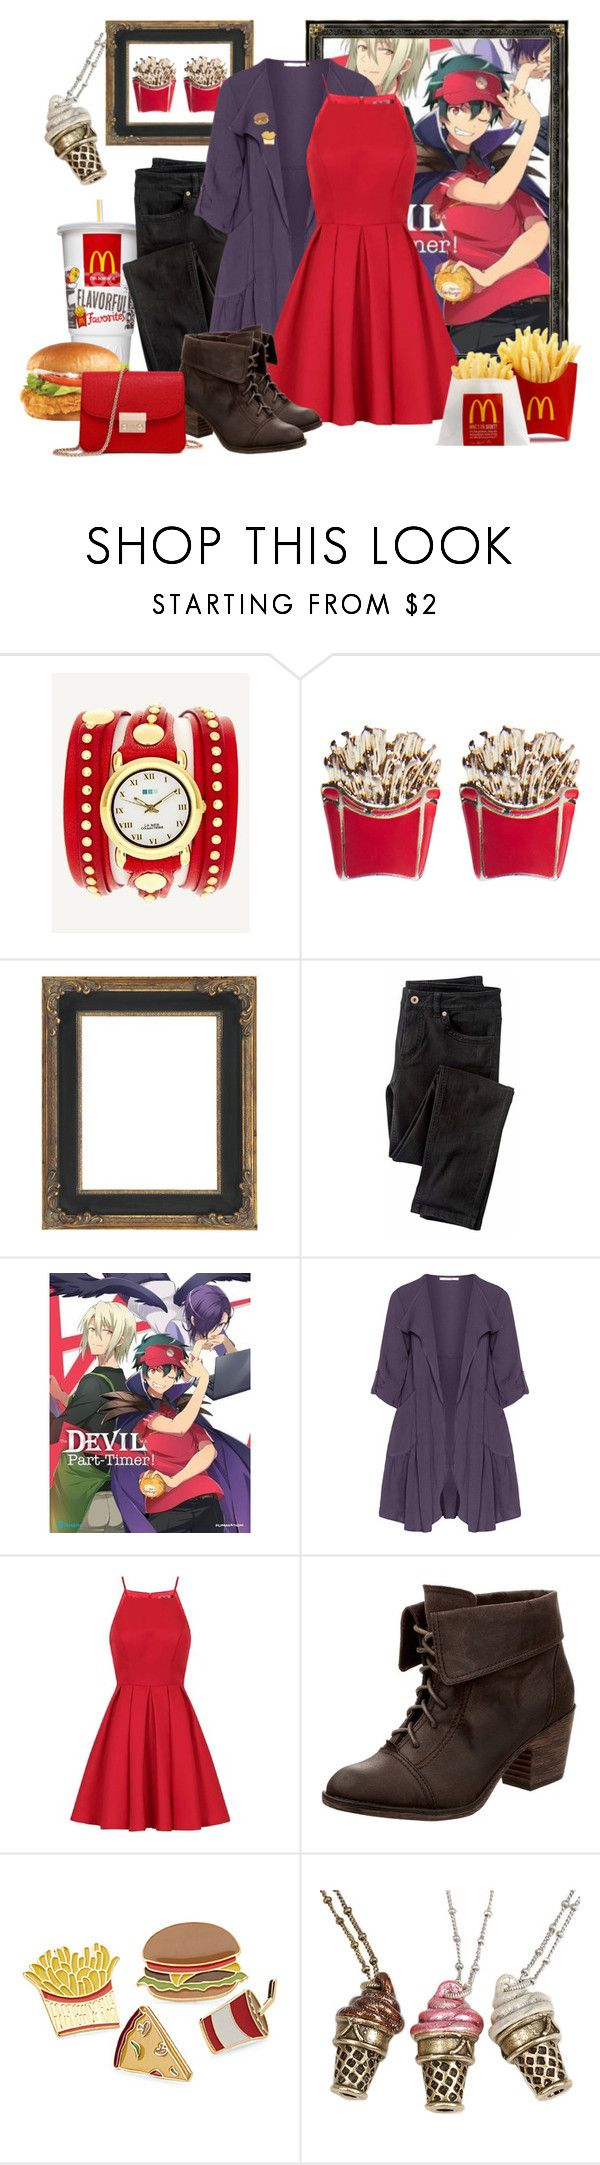 """The Devil Is a Part-Timer! - Sadao Maou / Satan"" by marielw97 ❤ liked on Polyvore featuring La Mer, Wet Seal, Wrap, Oliver Jung, Chi Chi, Rocket Dog, Simons and Sweet Romance"